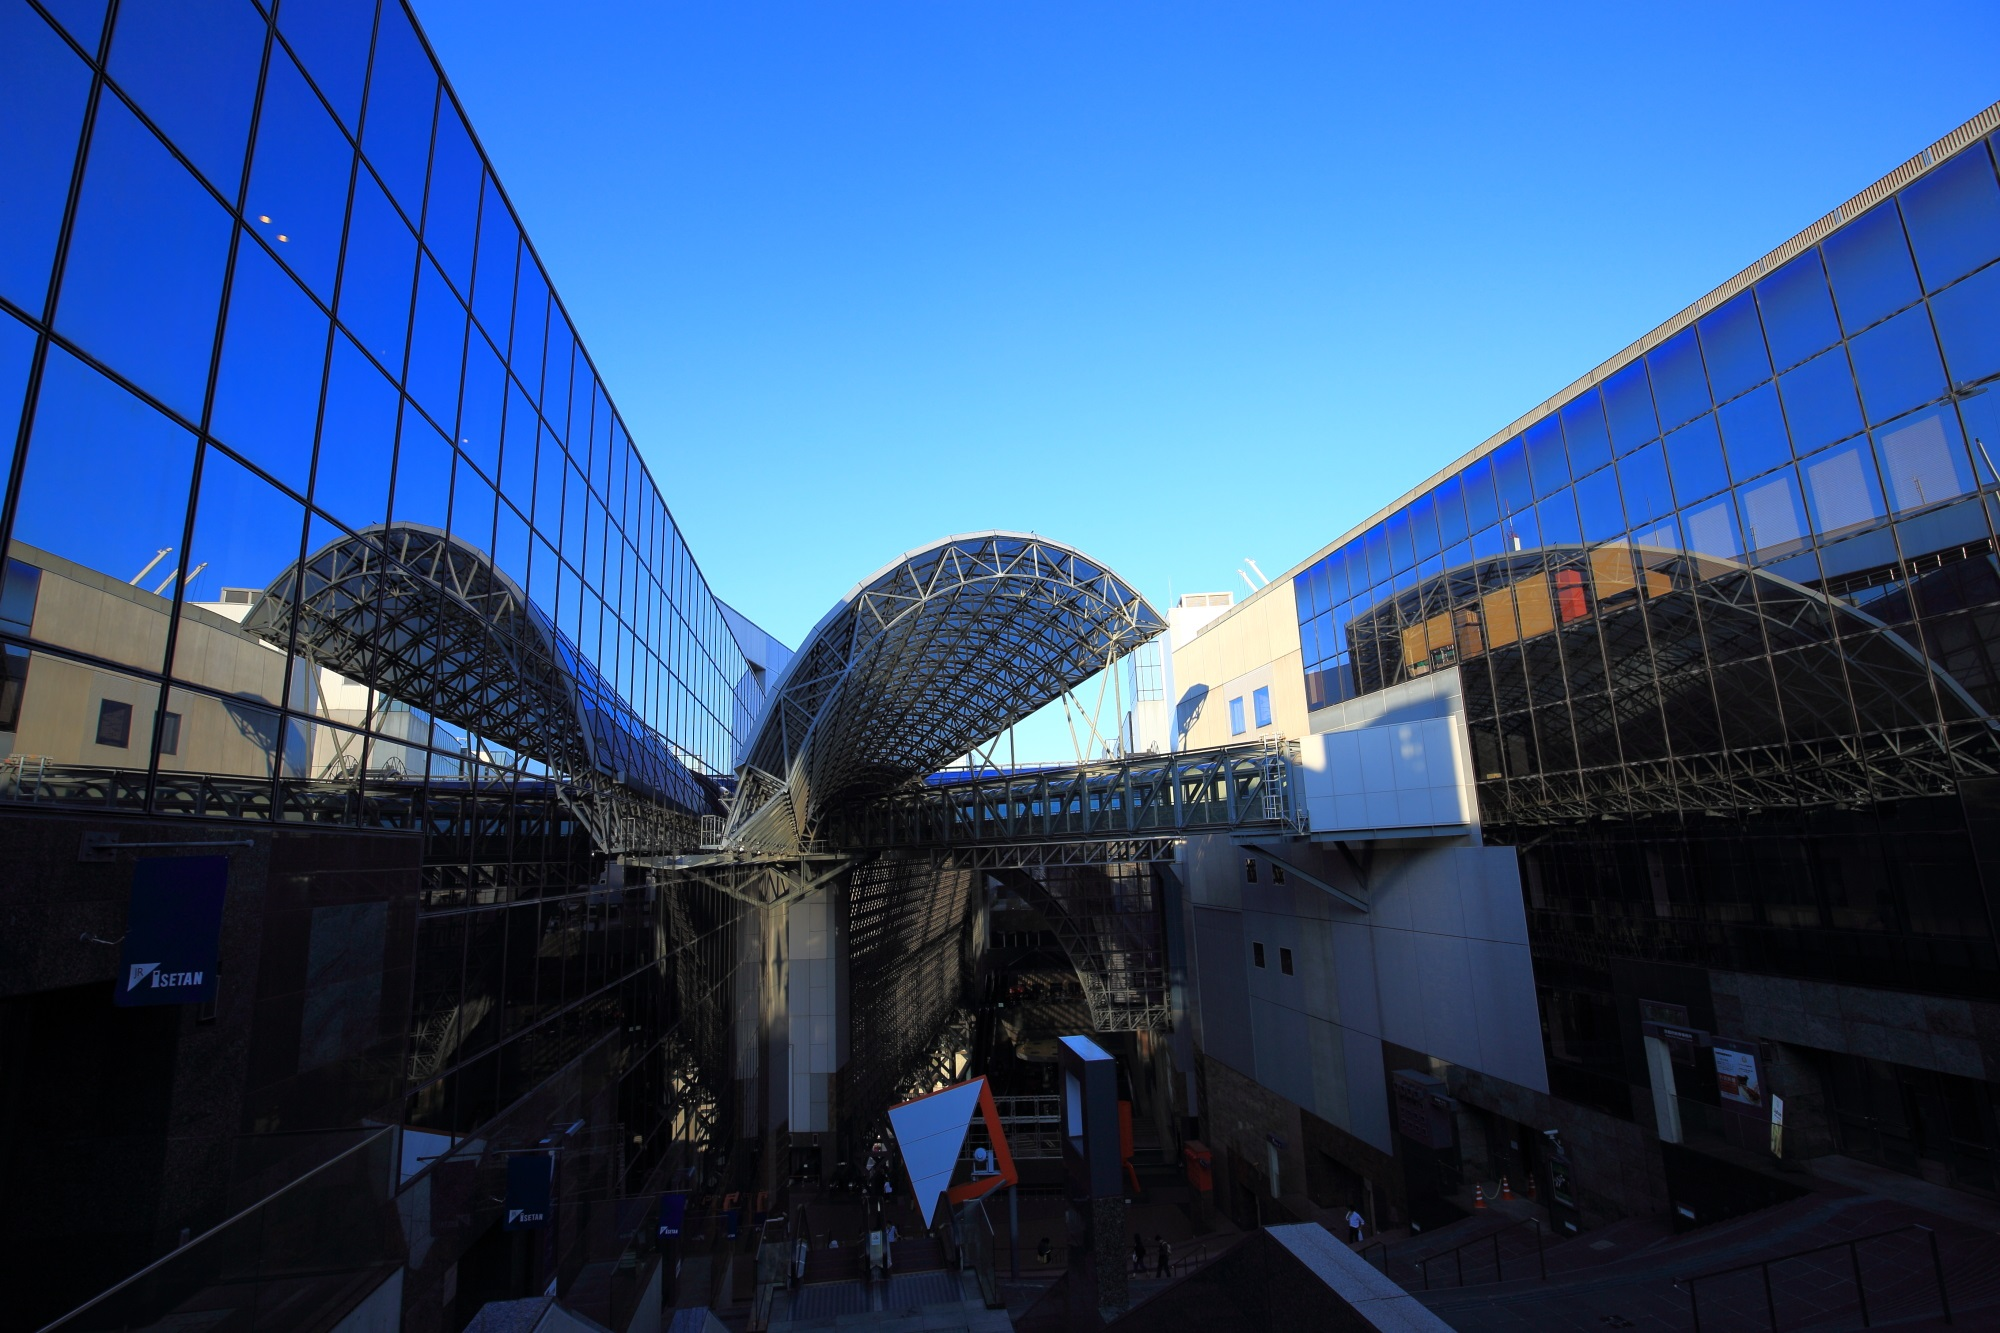 Kyoto Station Building and blue sky in Kyoto Japan